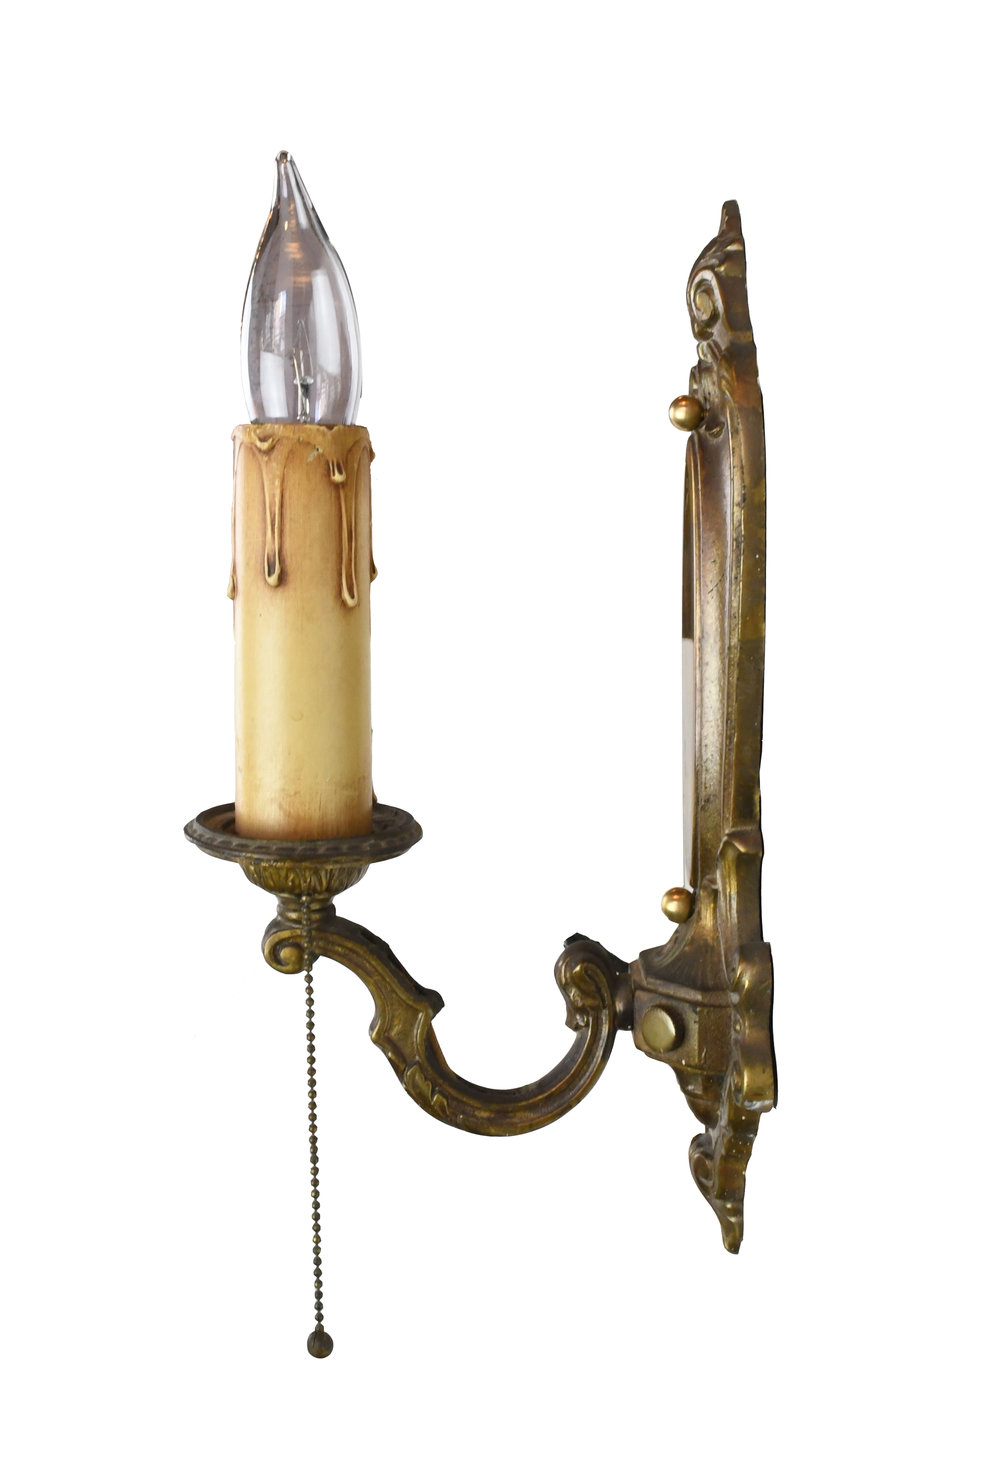 47494-beaux-arts-cast-brass-single-candle-sconce-side-1.jpg